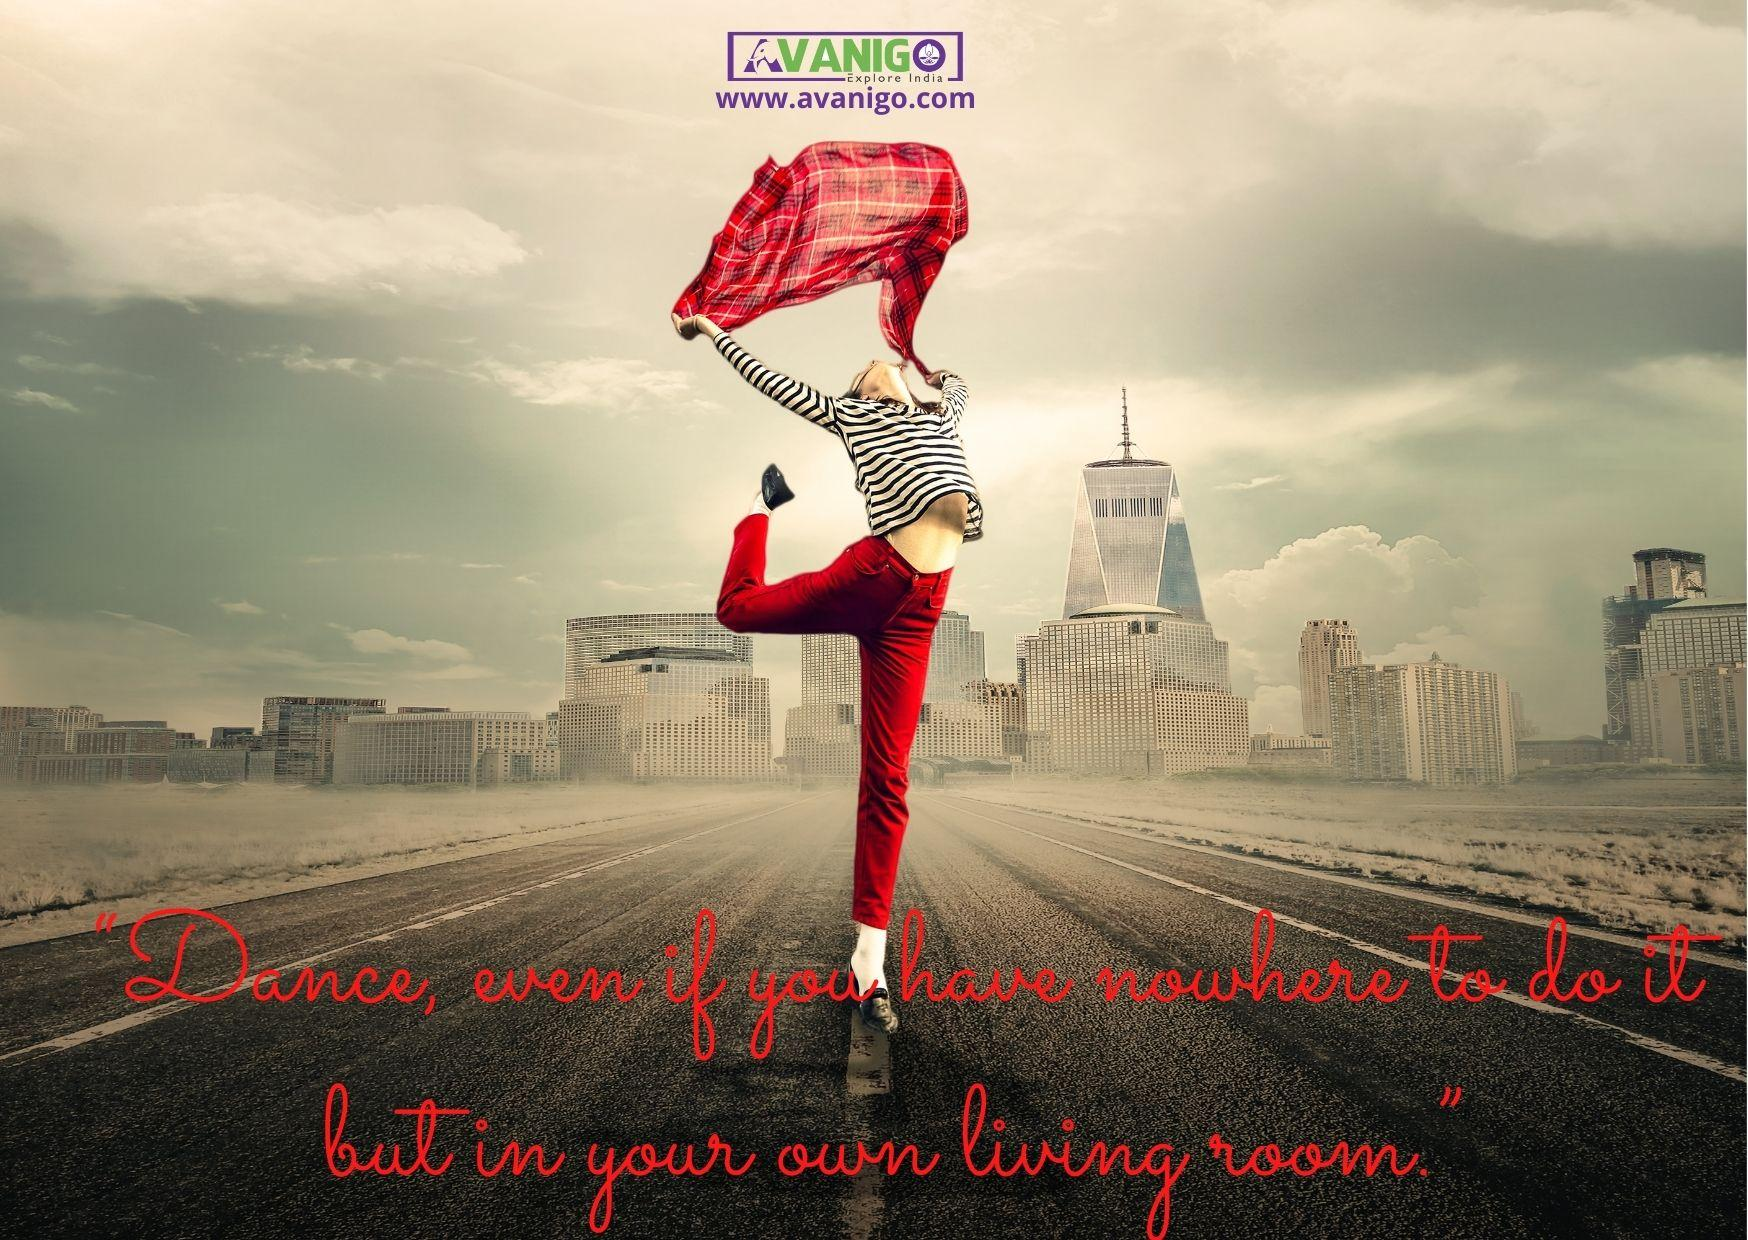 Dance, even if you have nowhere to do it but in your own living room.